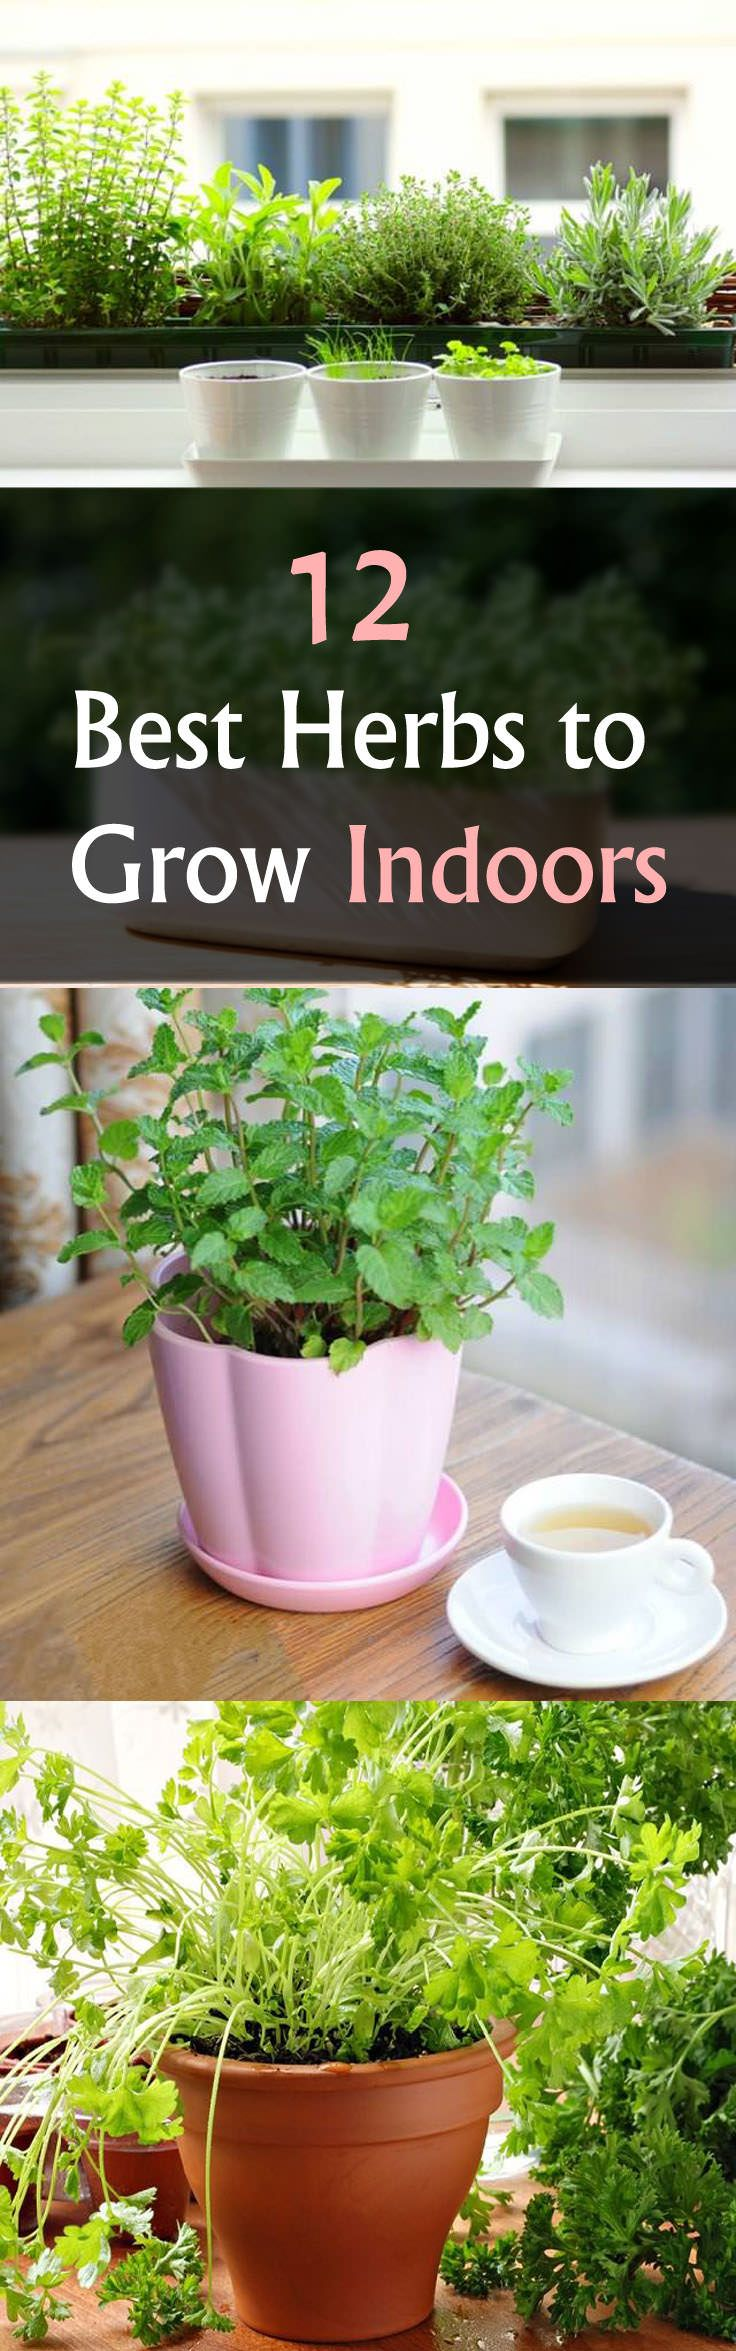 Starting A Herb Garden Indoors 12 best herbs to grow indoors herbs indoor herbs and herbs garden starting an indoor herb garden find out 12 best herbs to grow indoors these are easiest to grow and require less care workwithnaturefo